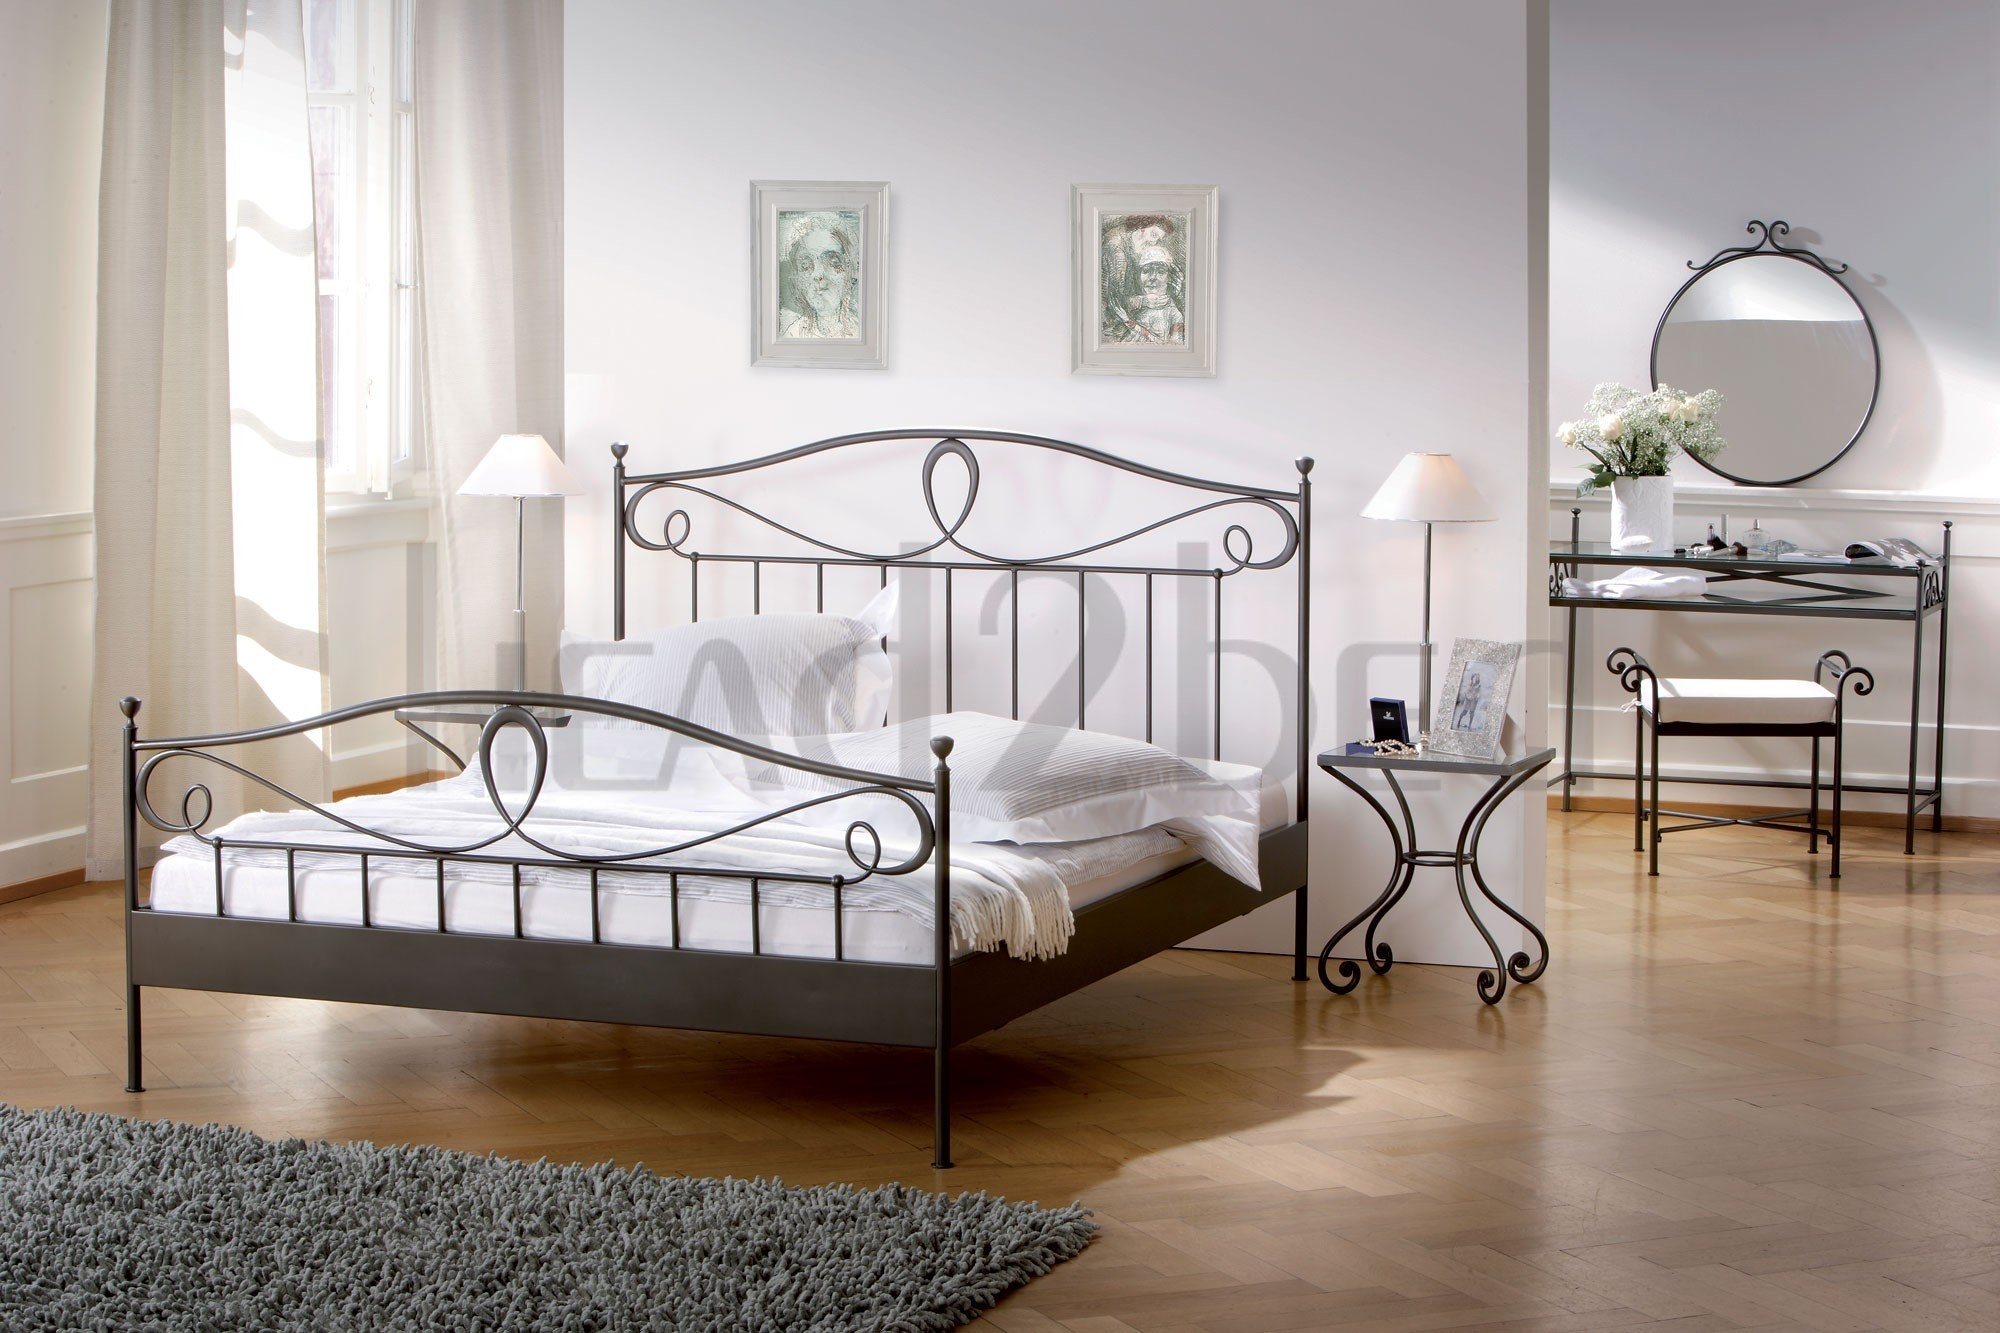 hasena romantic lurano solid wrought iron bed head2bed uk. Black Bedroom Furniture Sets. Home Design Ideas